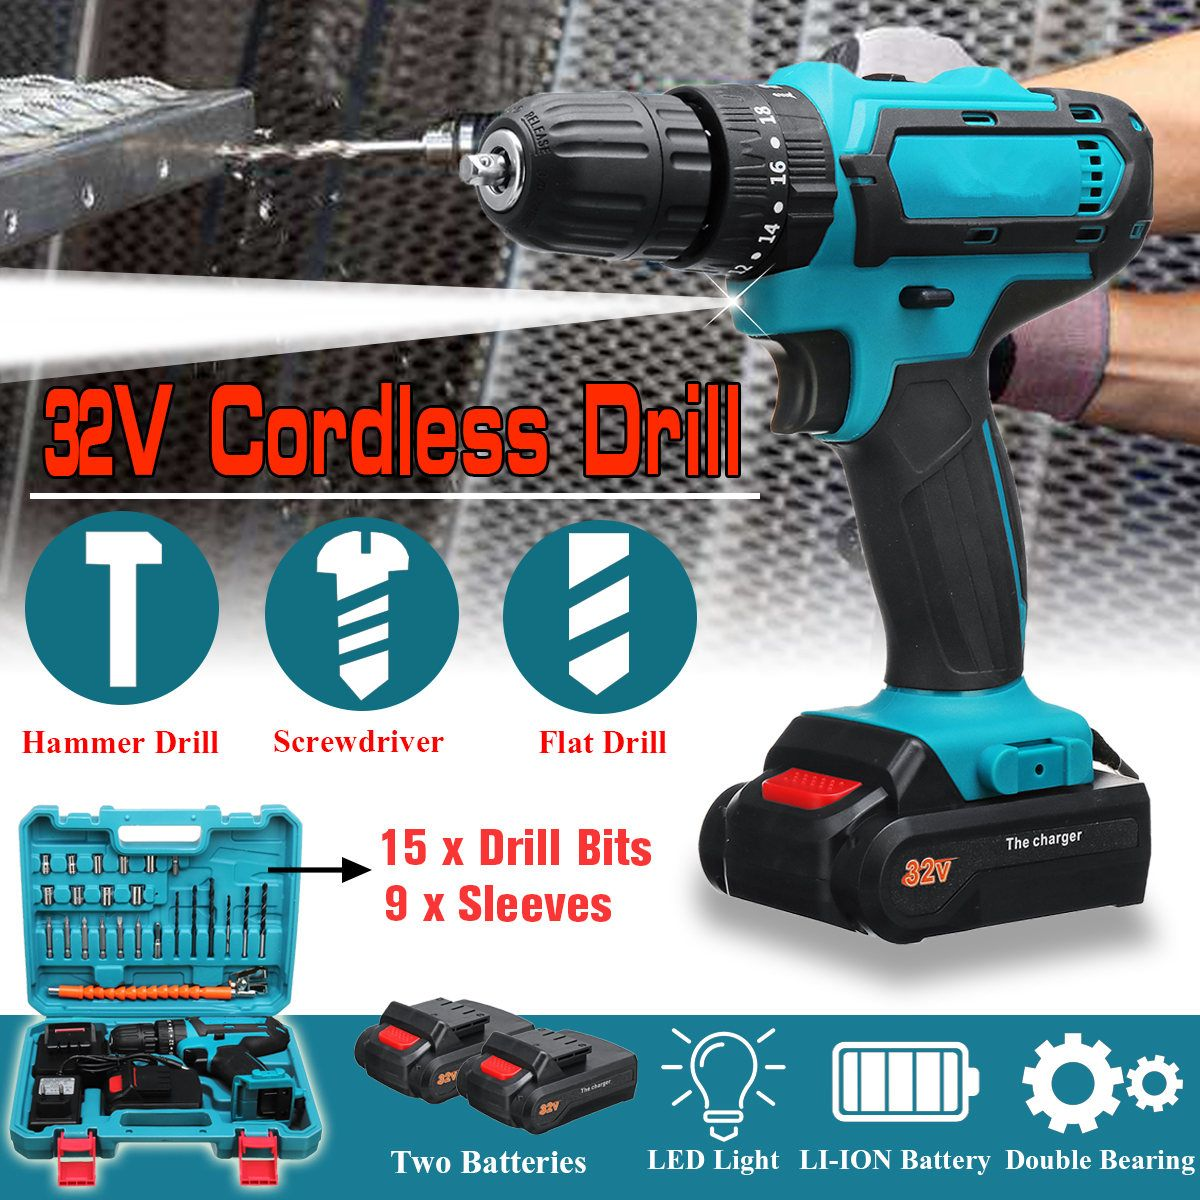 32V Max Cordless Drill 2 Speed Electric Screwdriver with 2 Batteries Impact Drill Power Driver 3 IN1 Electric Drill Power Tool